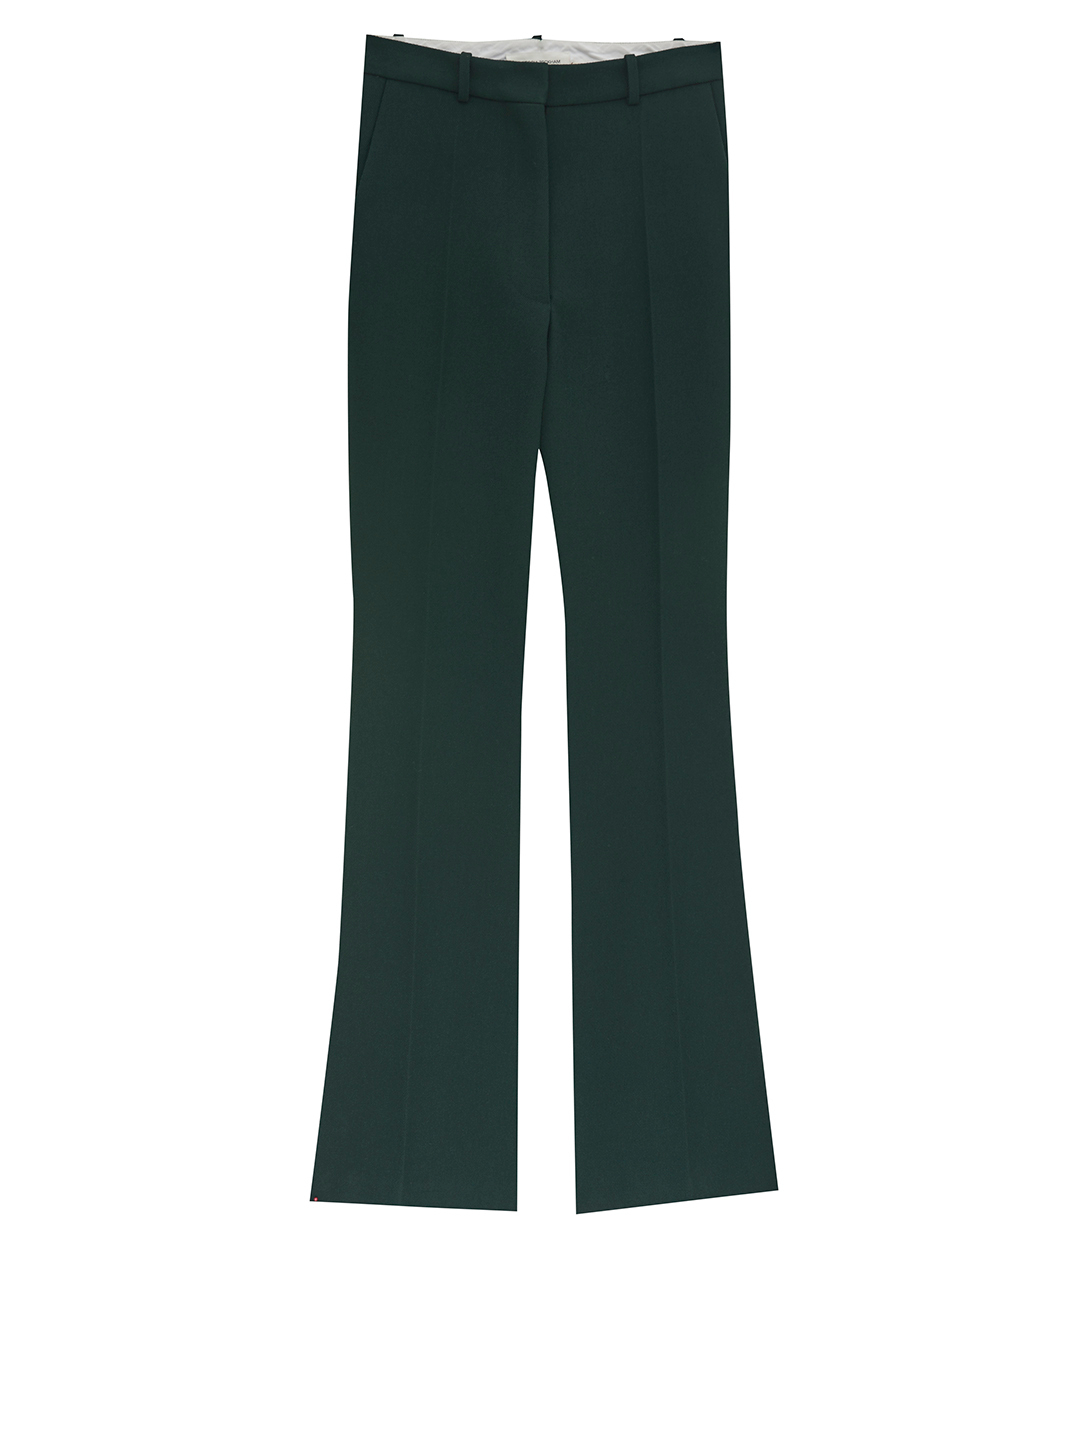 VICTORIA BECKHAM Wool Slim-Fit Pants Women's Green